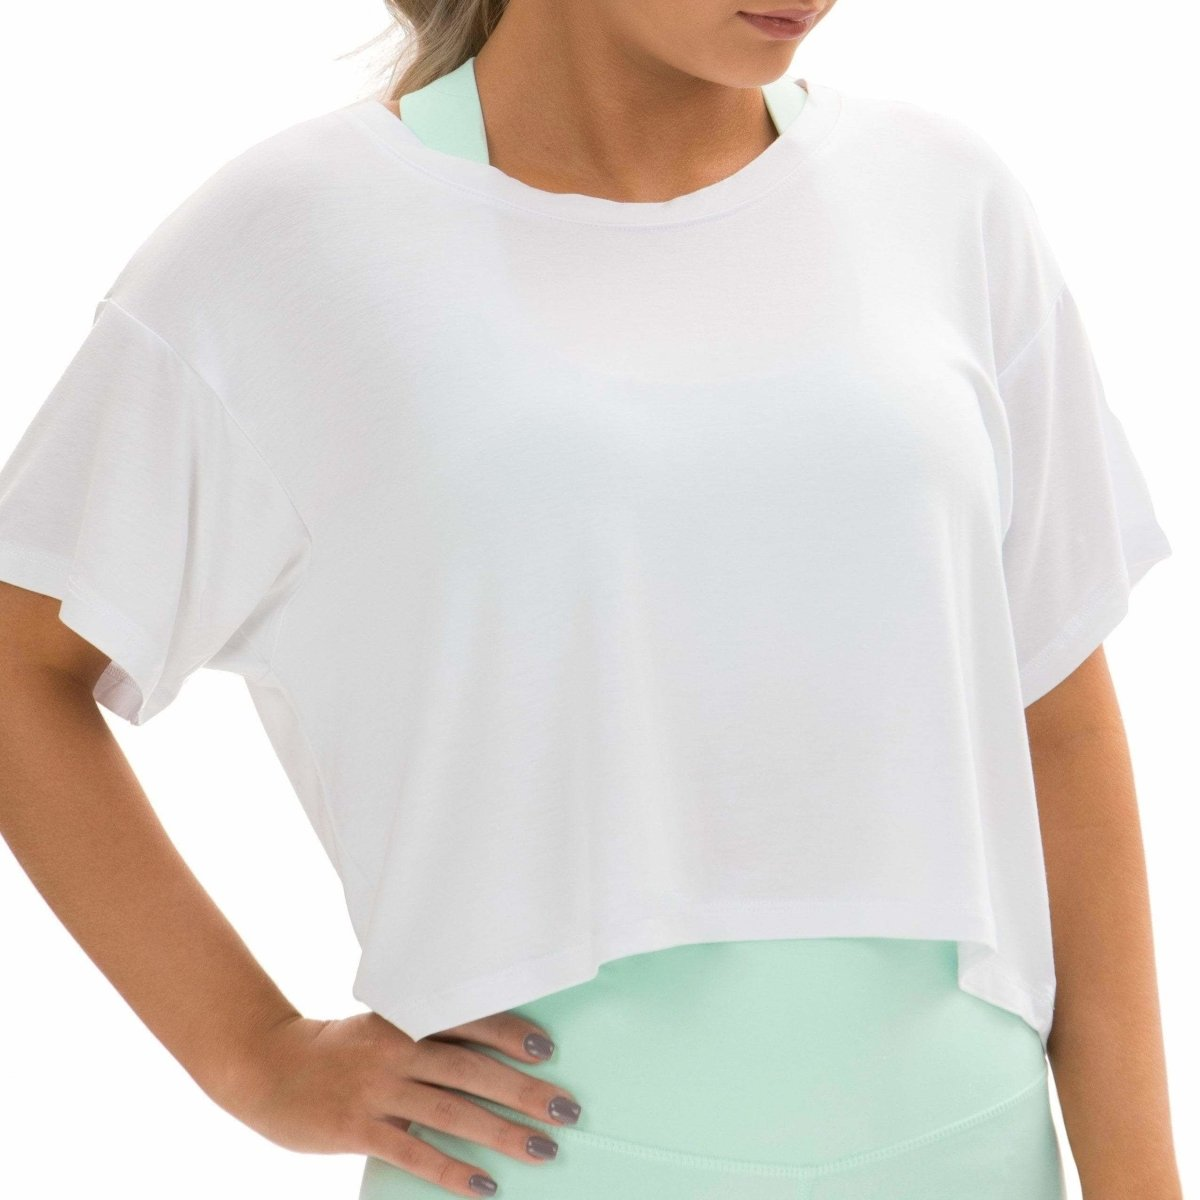 Loose-fit Crop Top in White - Southern Athletica